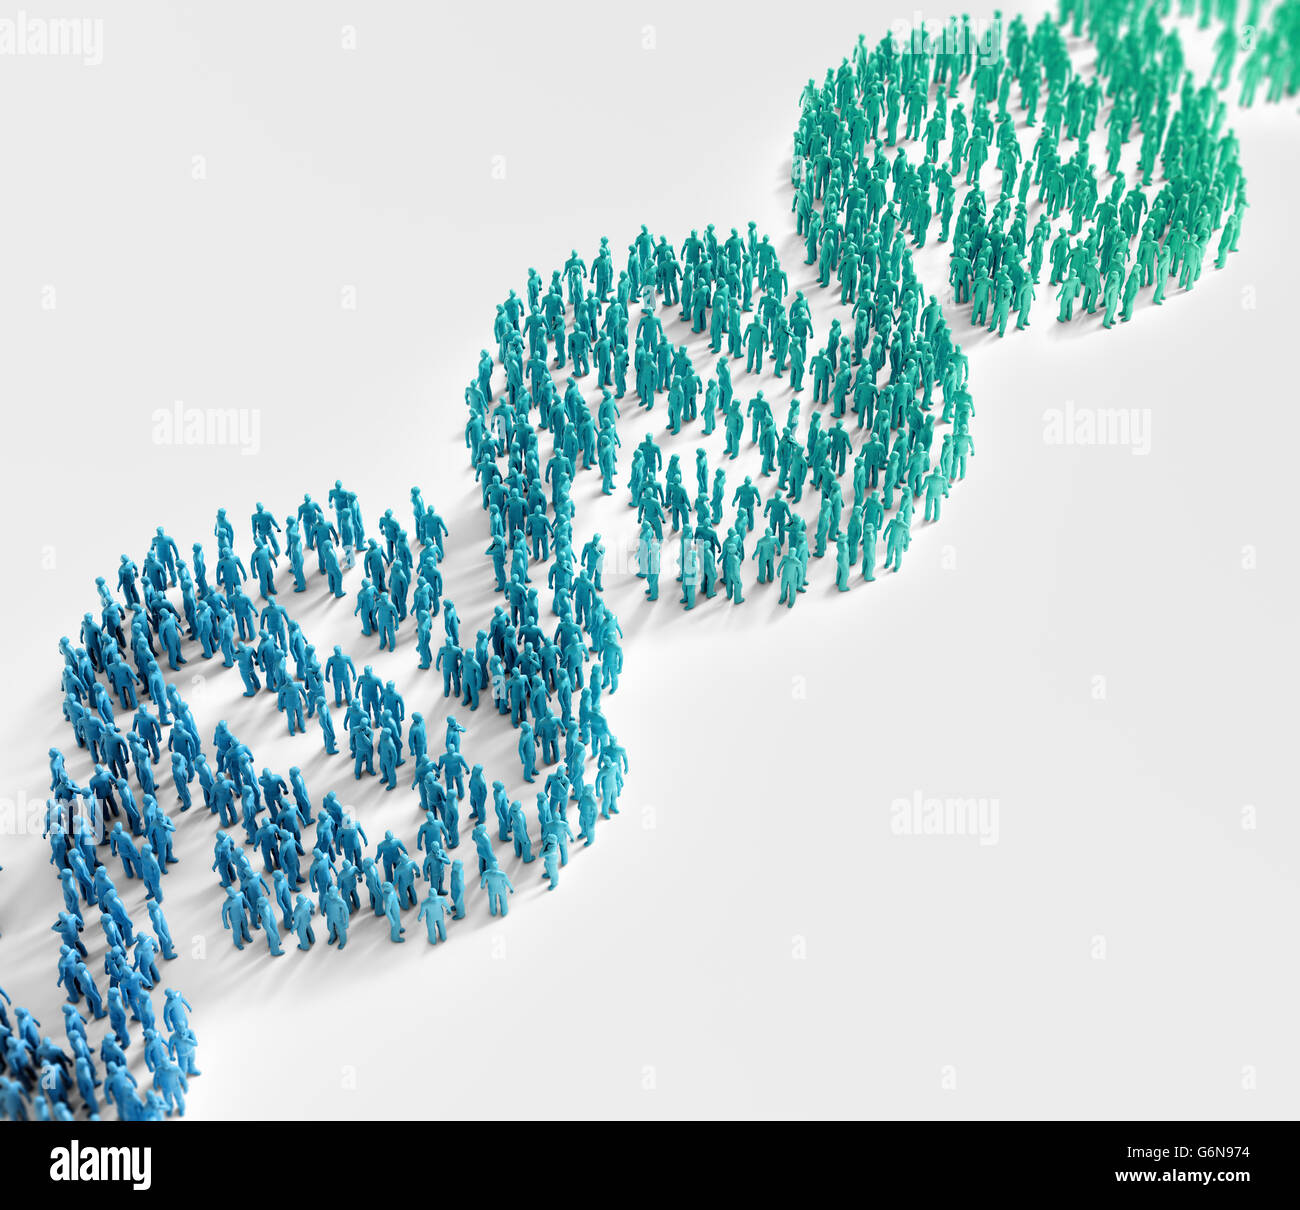 Tiny people forming a DNA helix symbol - genetics research and population wide genetic traits concept - Stock Image